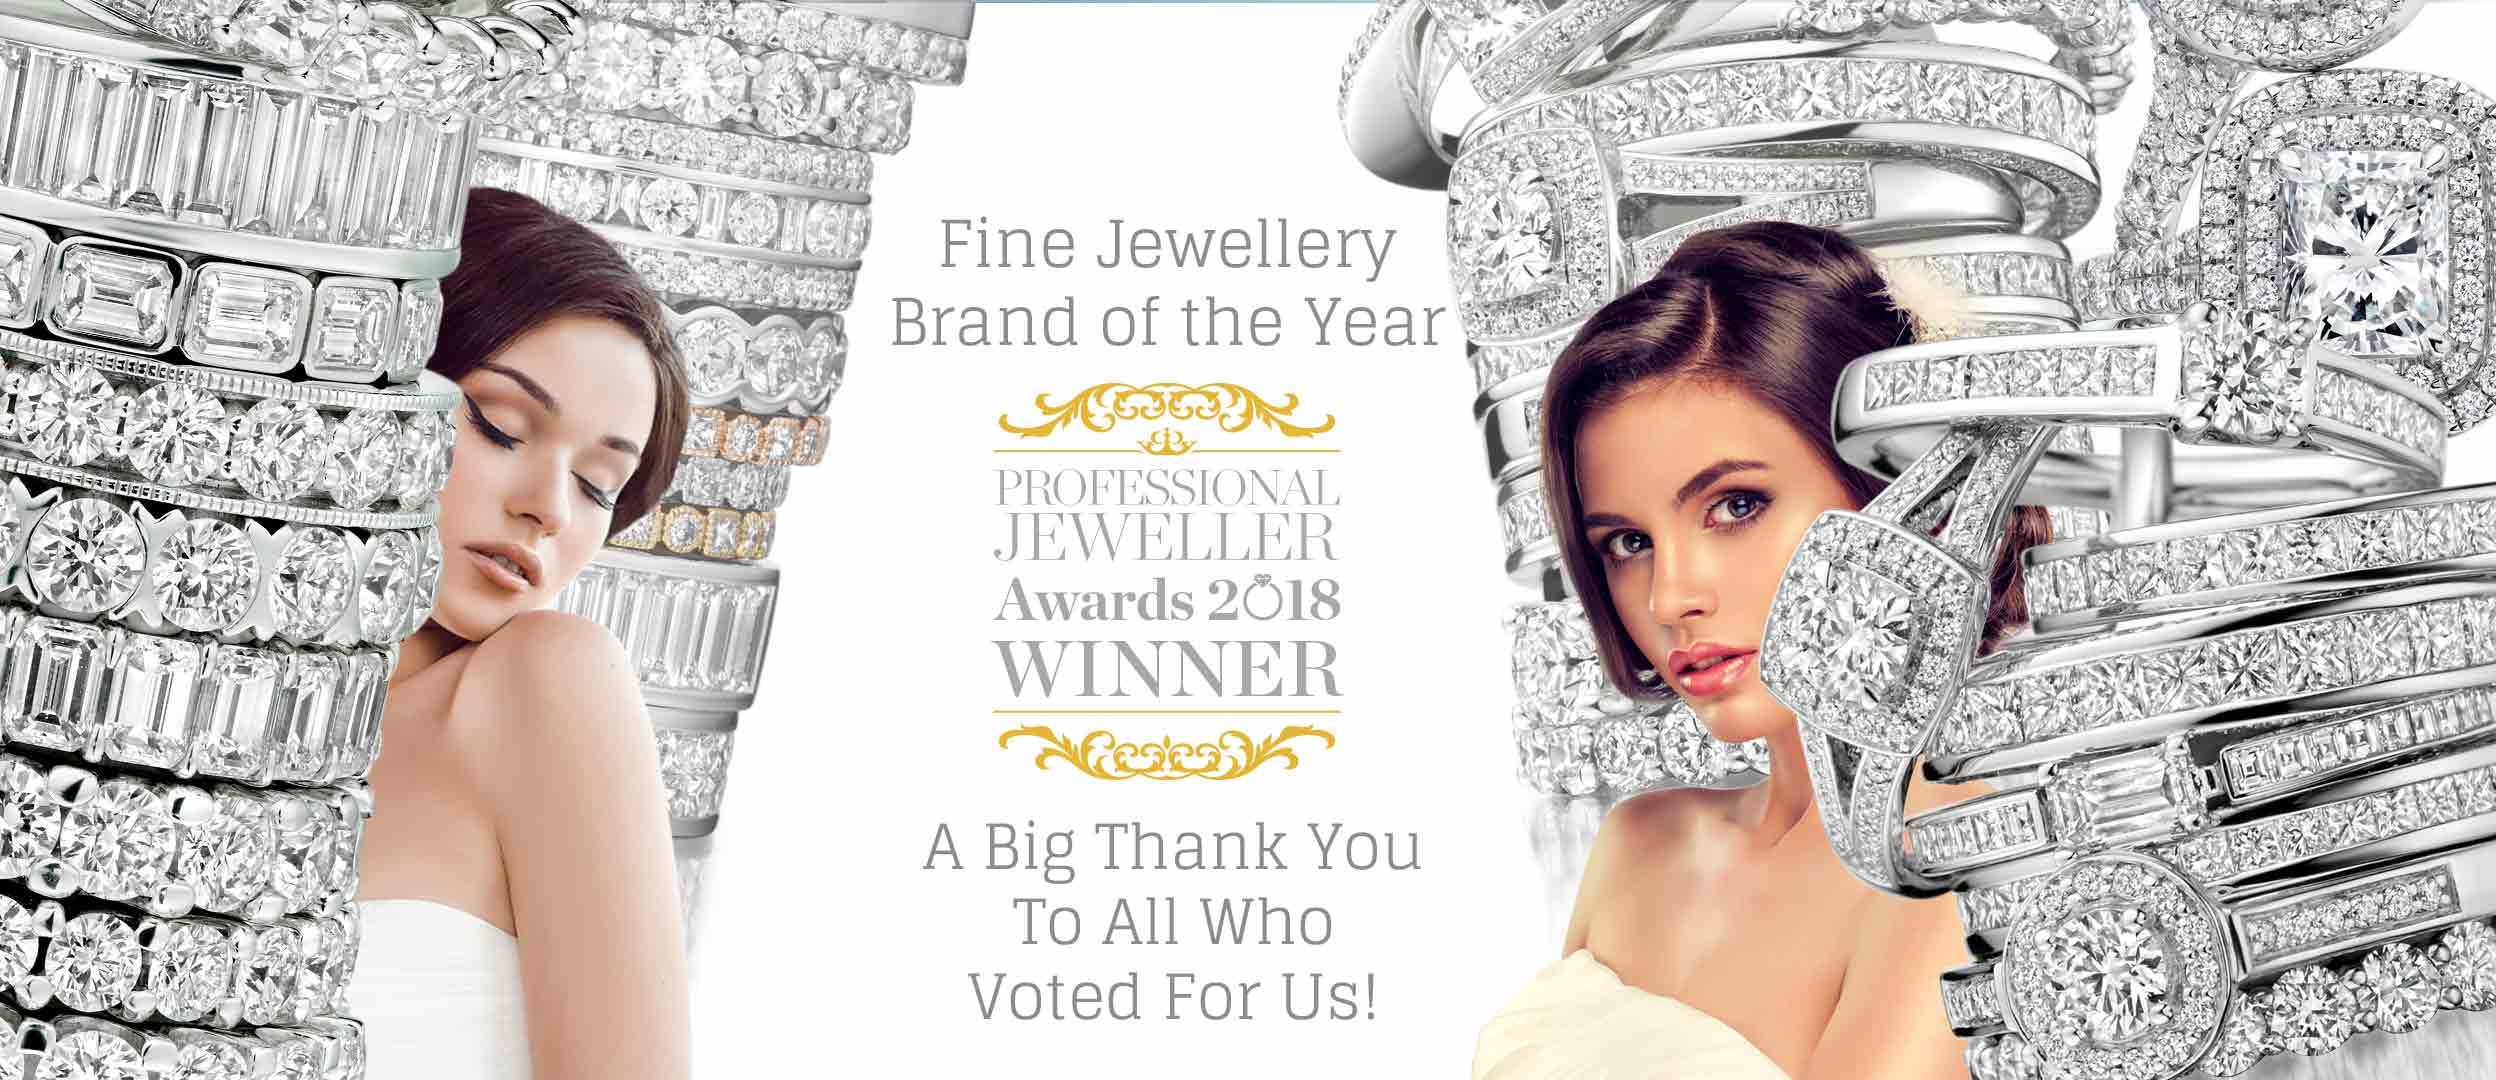 Fine Jewellery Brand of the Year Winner 2018